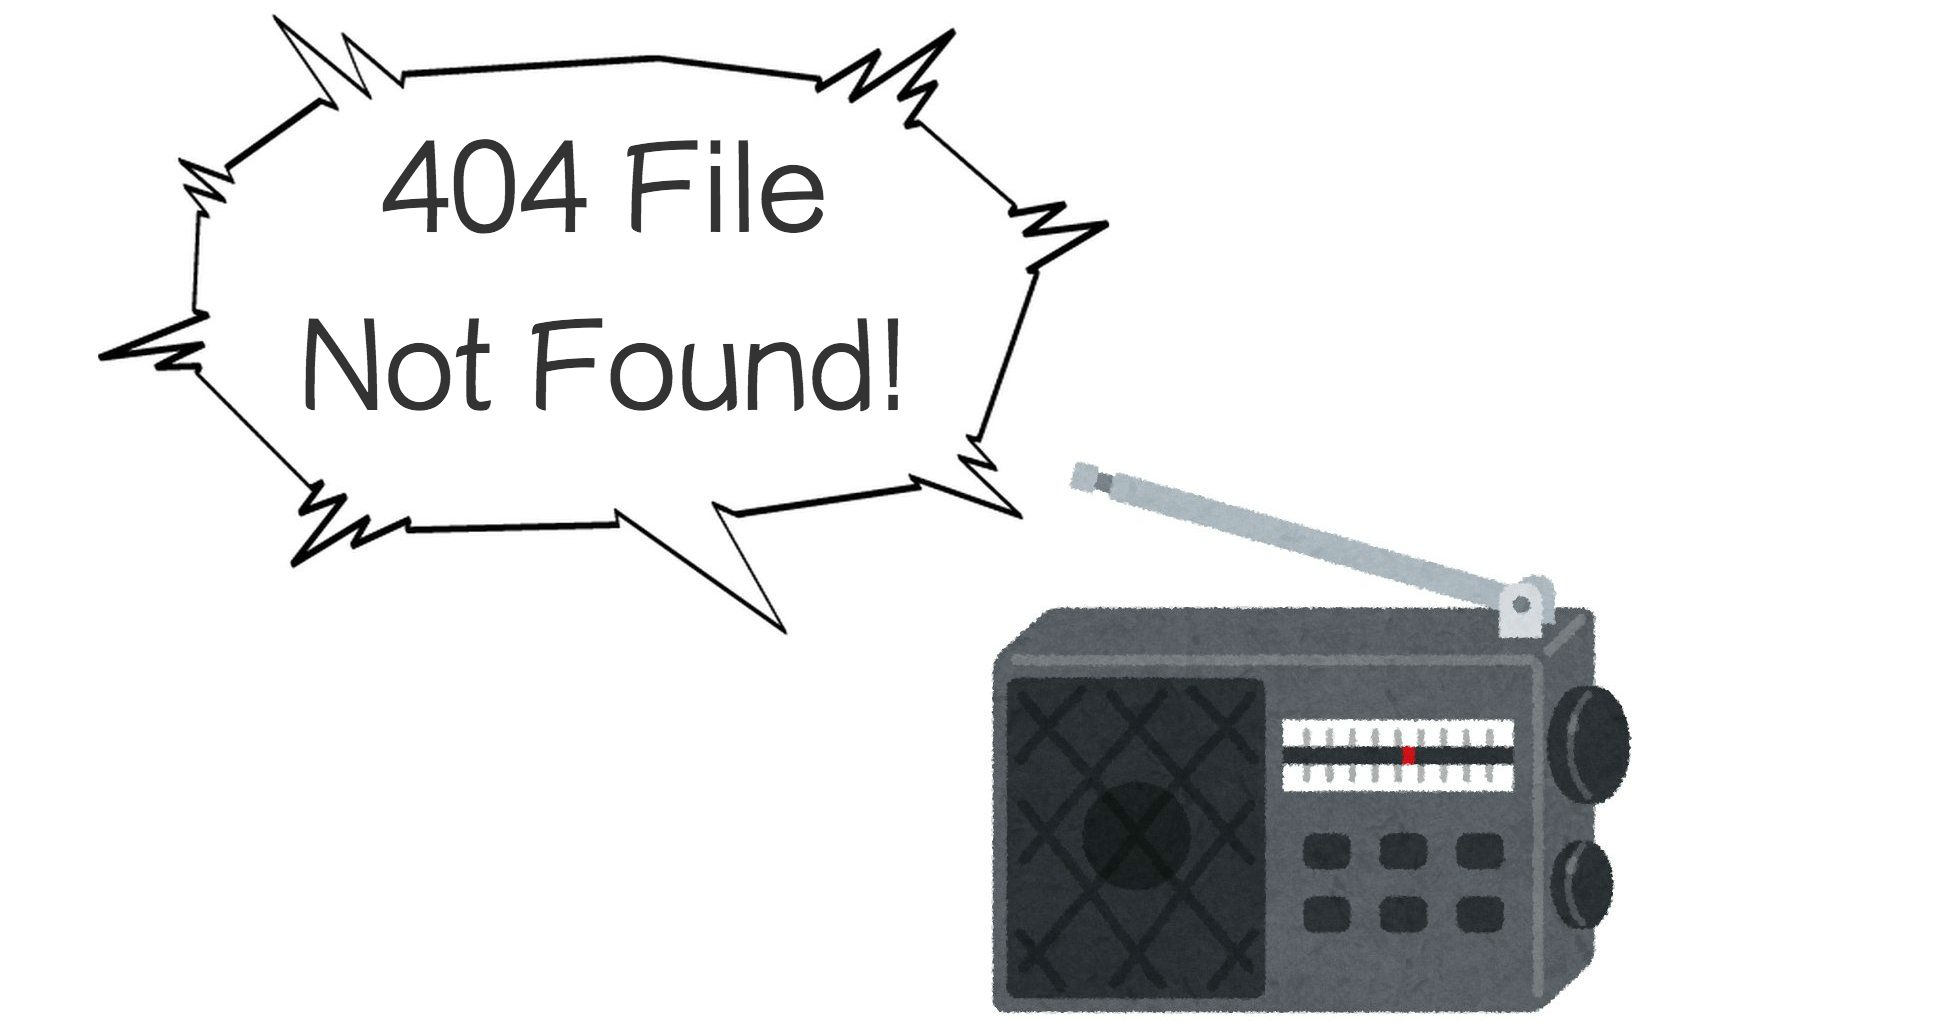 404 Not File Found.